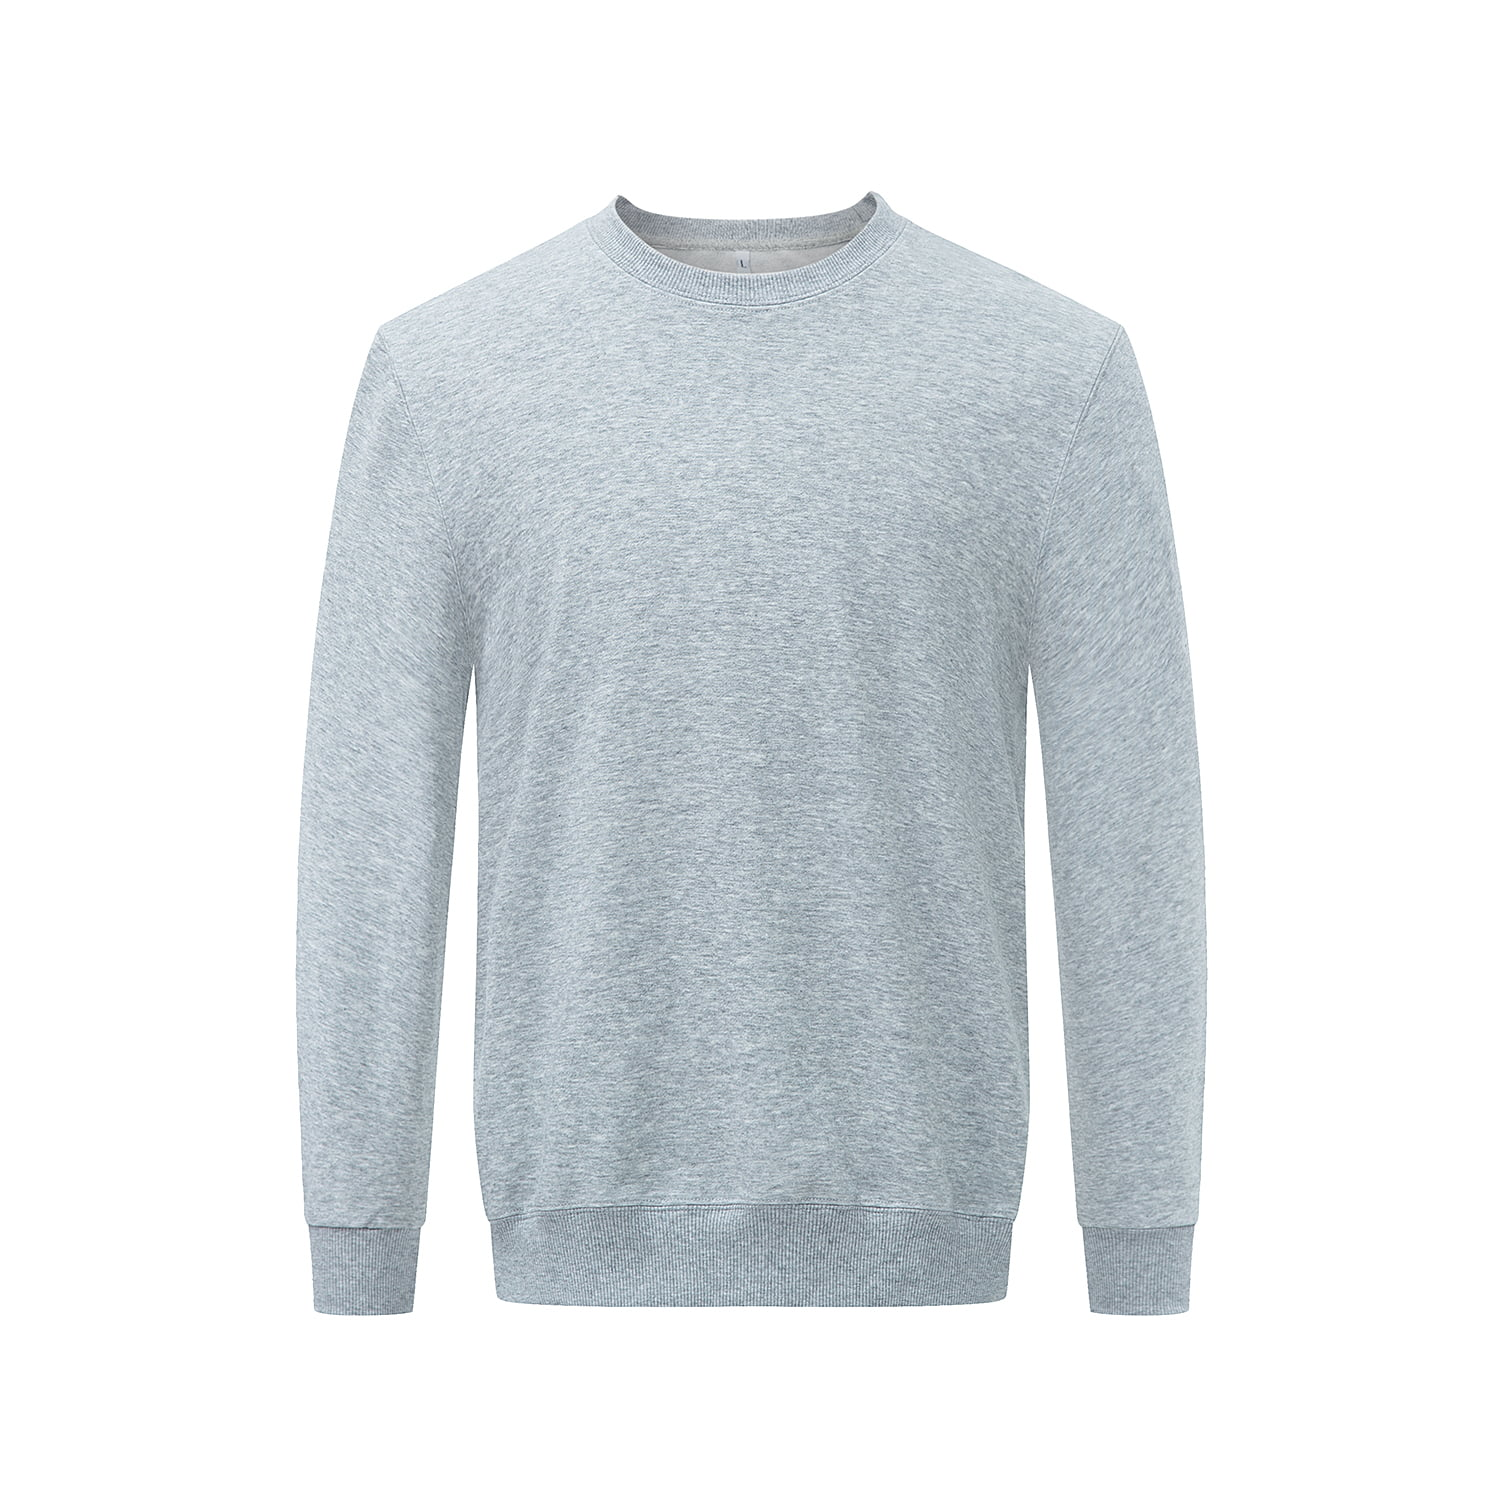 Front view of the grey long sleeved sweatshirt